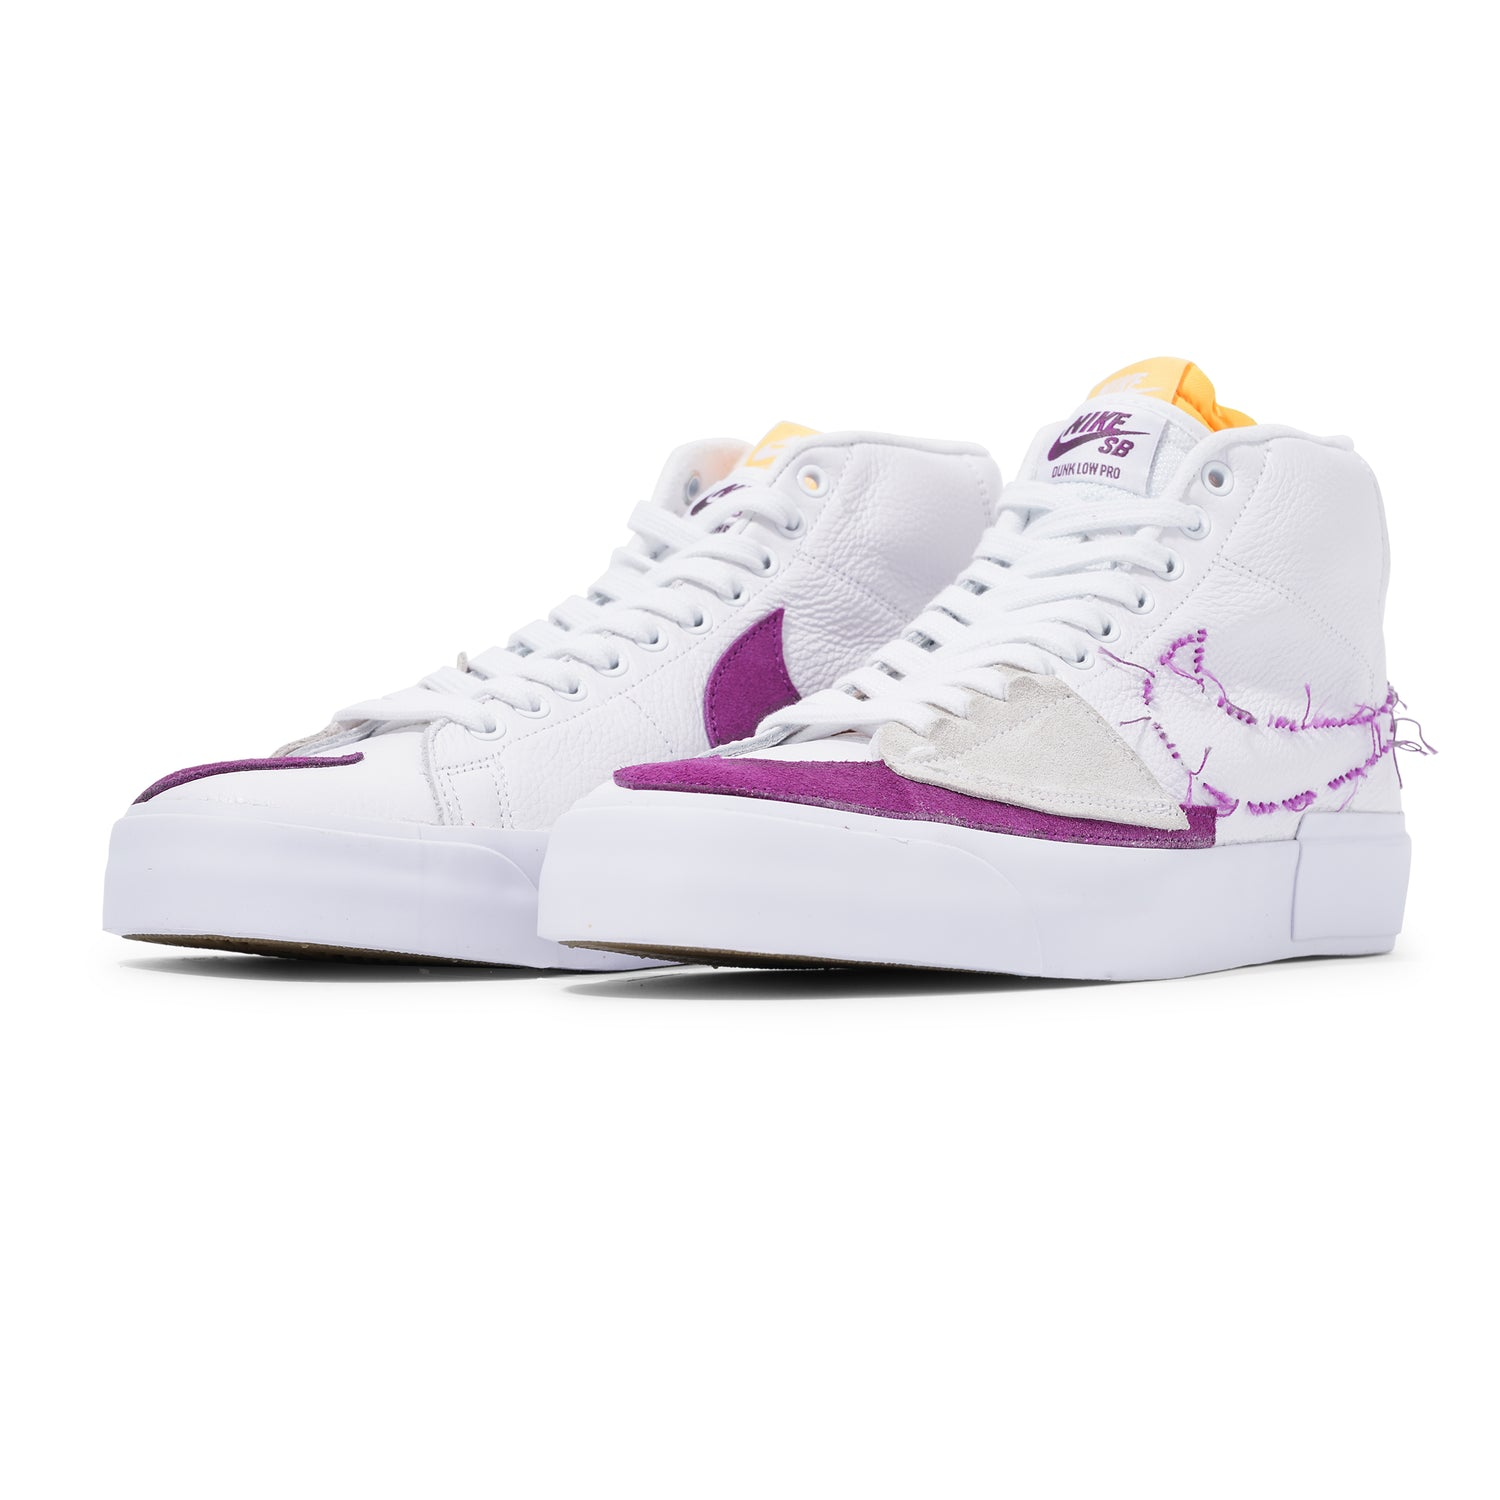 Zoom Blazer Mid Edge, White / Purple-Gold